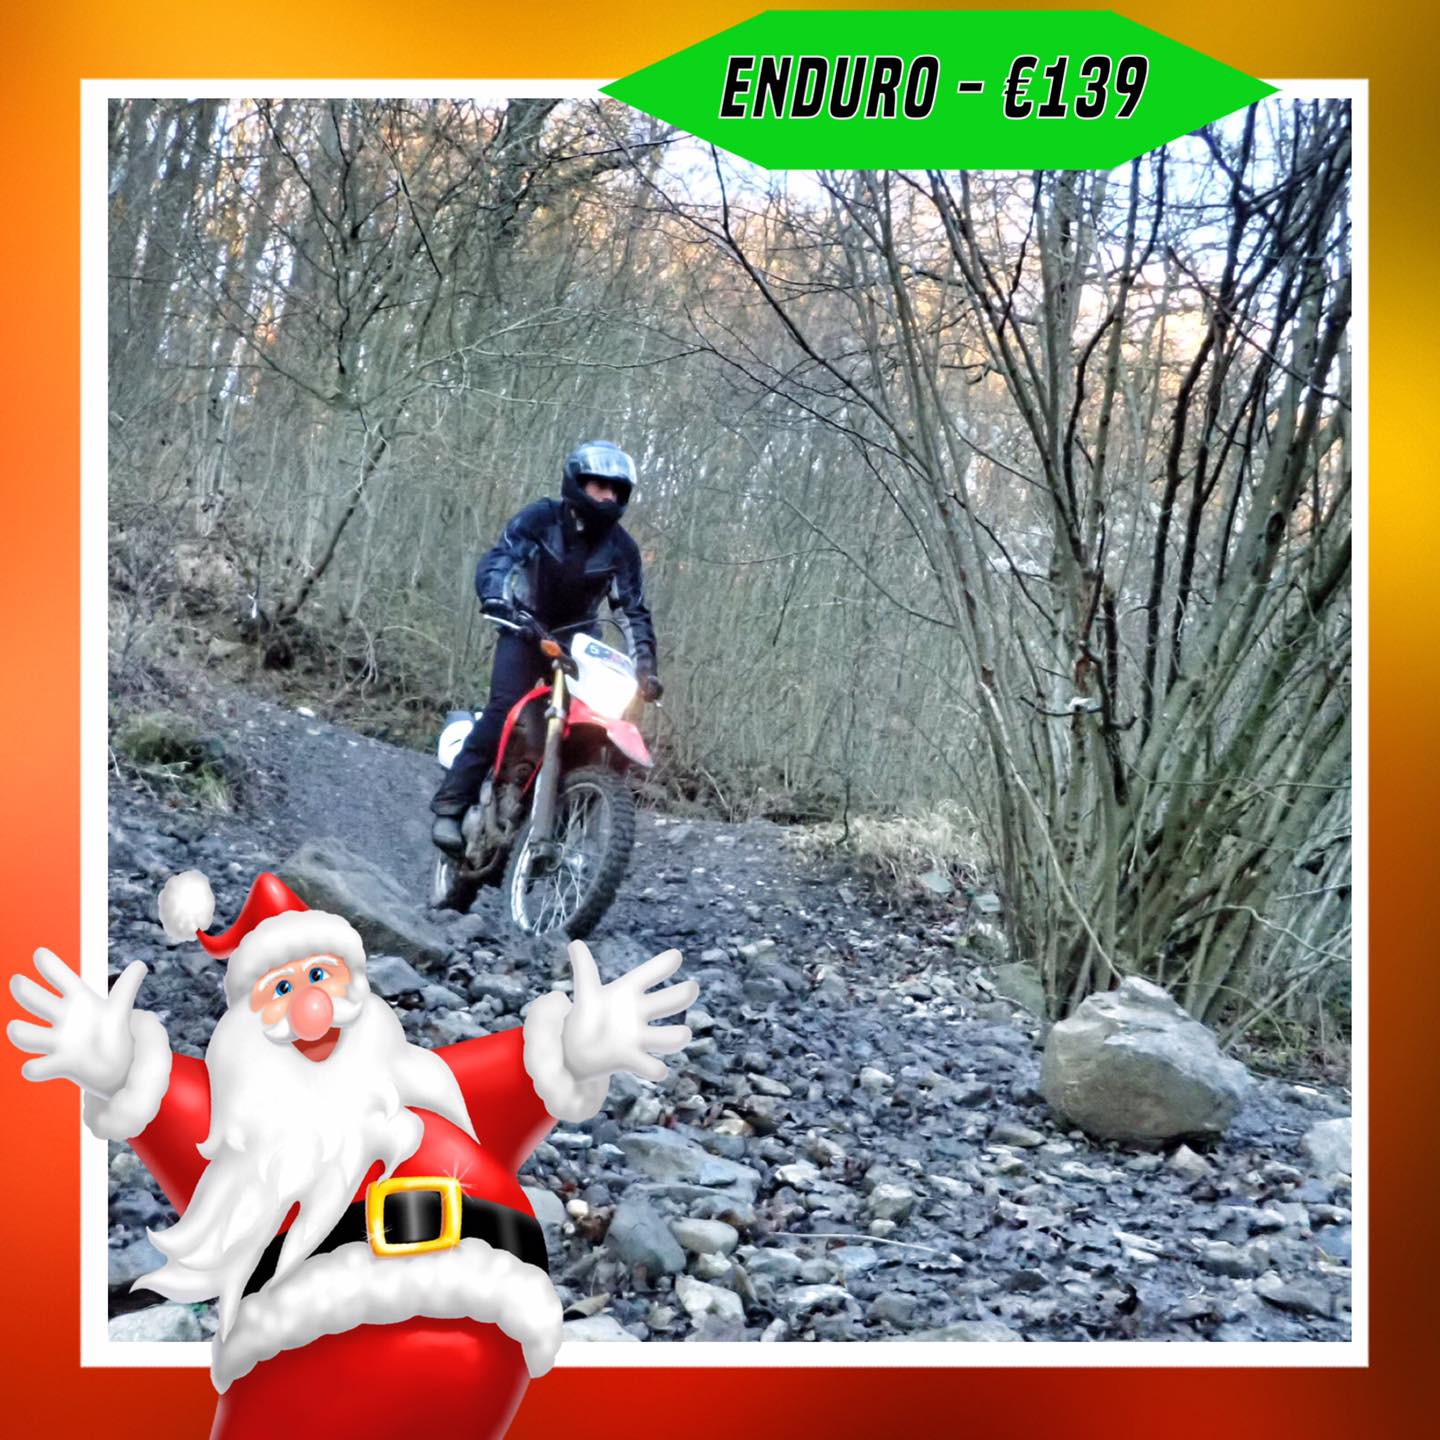 Kerst-initiaties Bilstain Endurofun 22